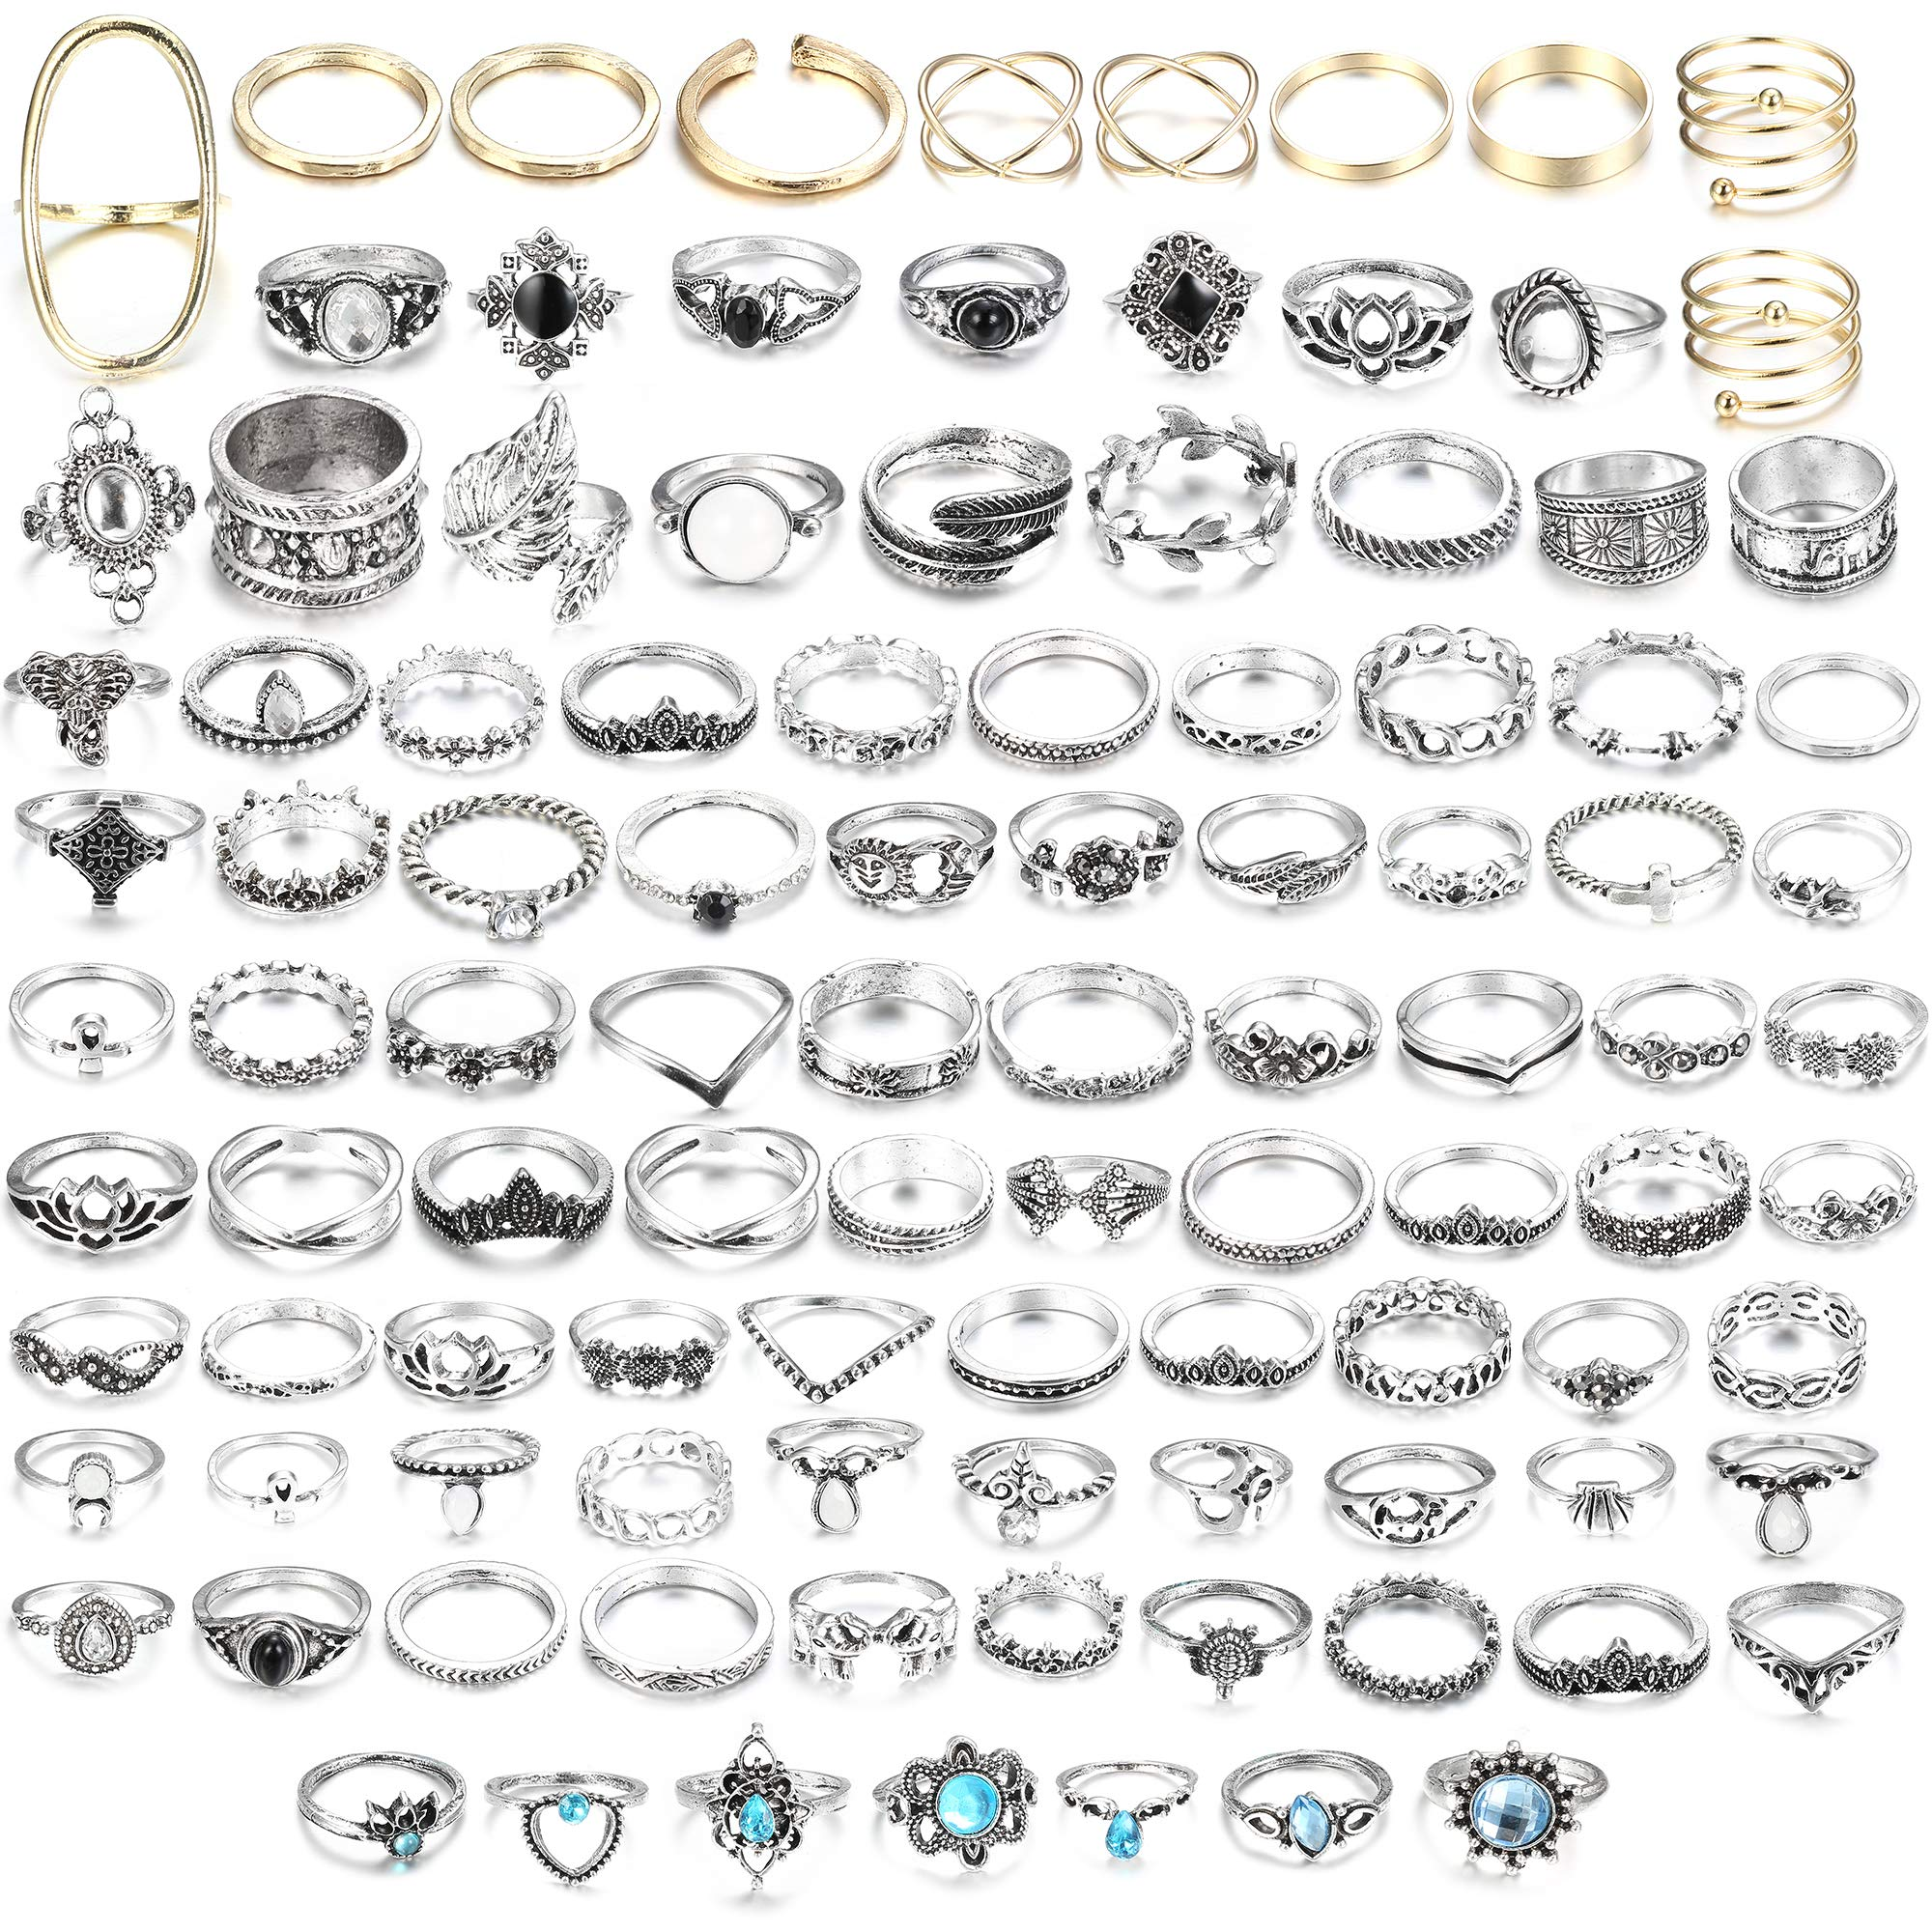 LOLIAS 44-60 Pcs Vintage Knuckle Ring Set for Women Girls Stackable Rings Set Hollow Carved Flowers (B:101 Pcs a Set)